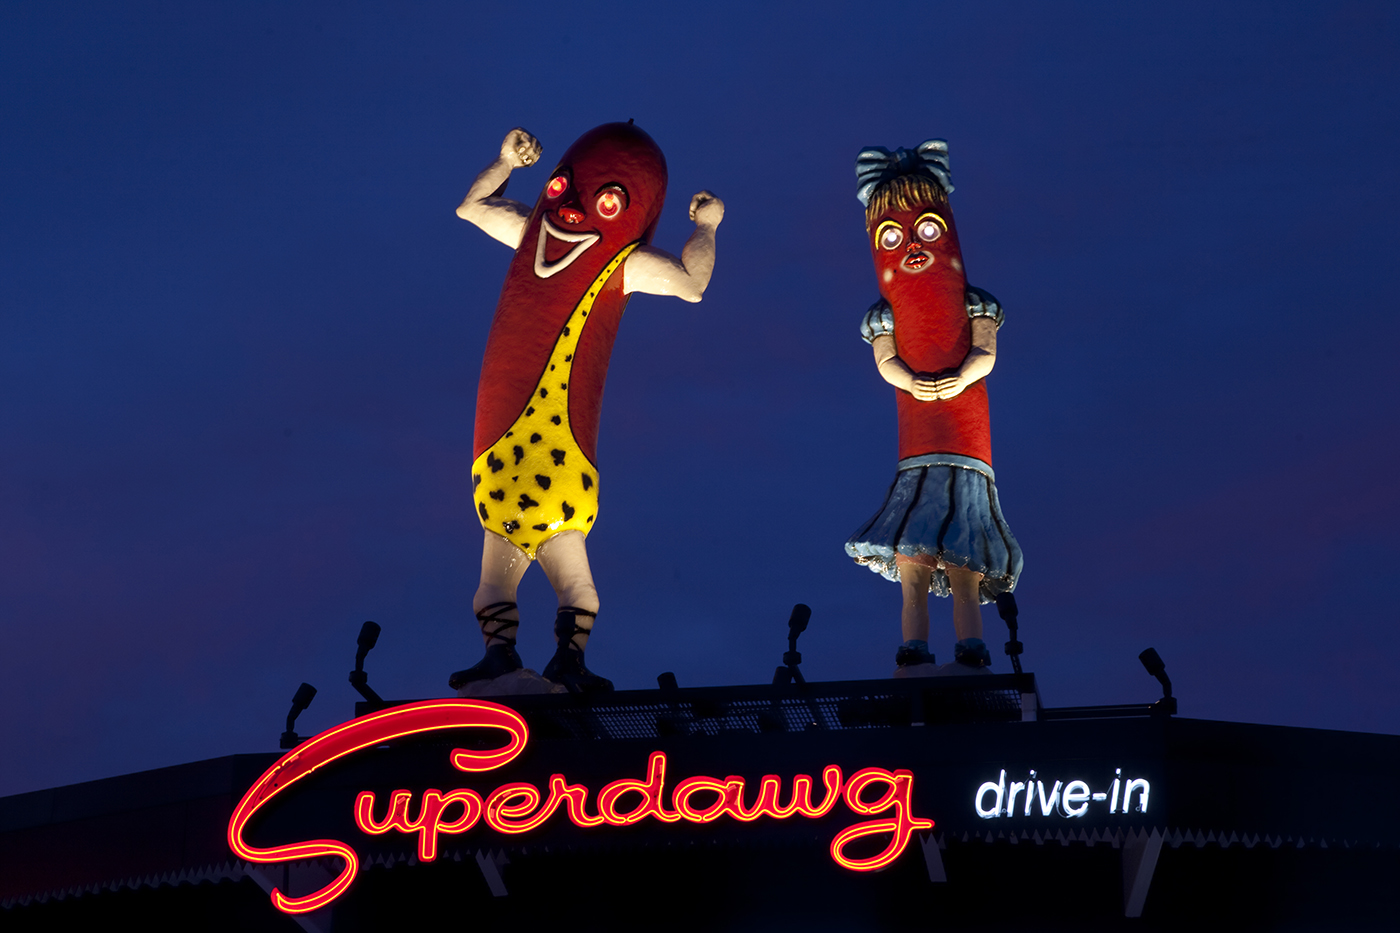 Giant fiberglass hot dogs Maurie and Flaurie at Superdawg Wheeling.